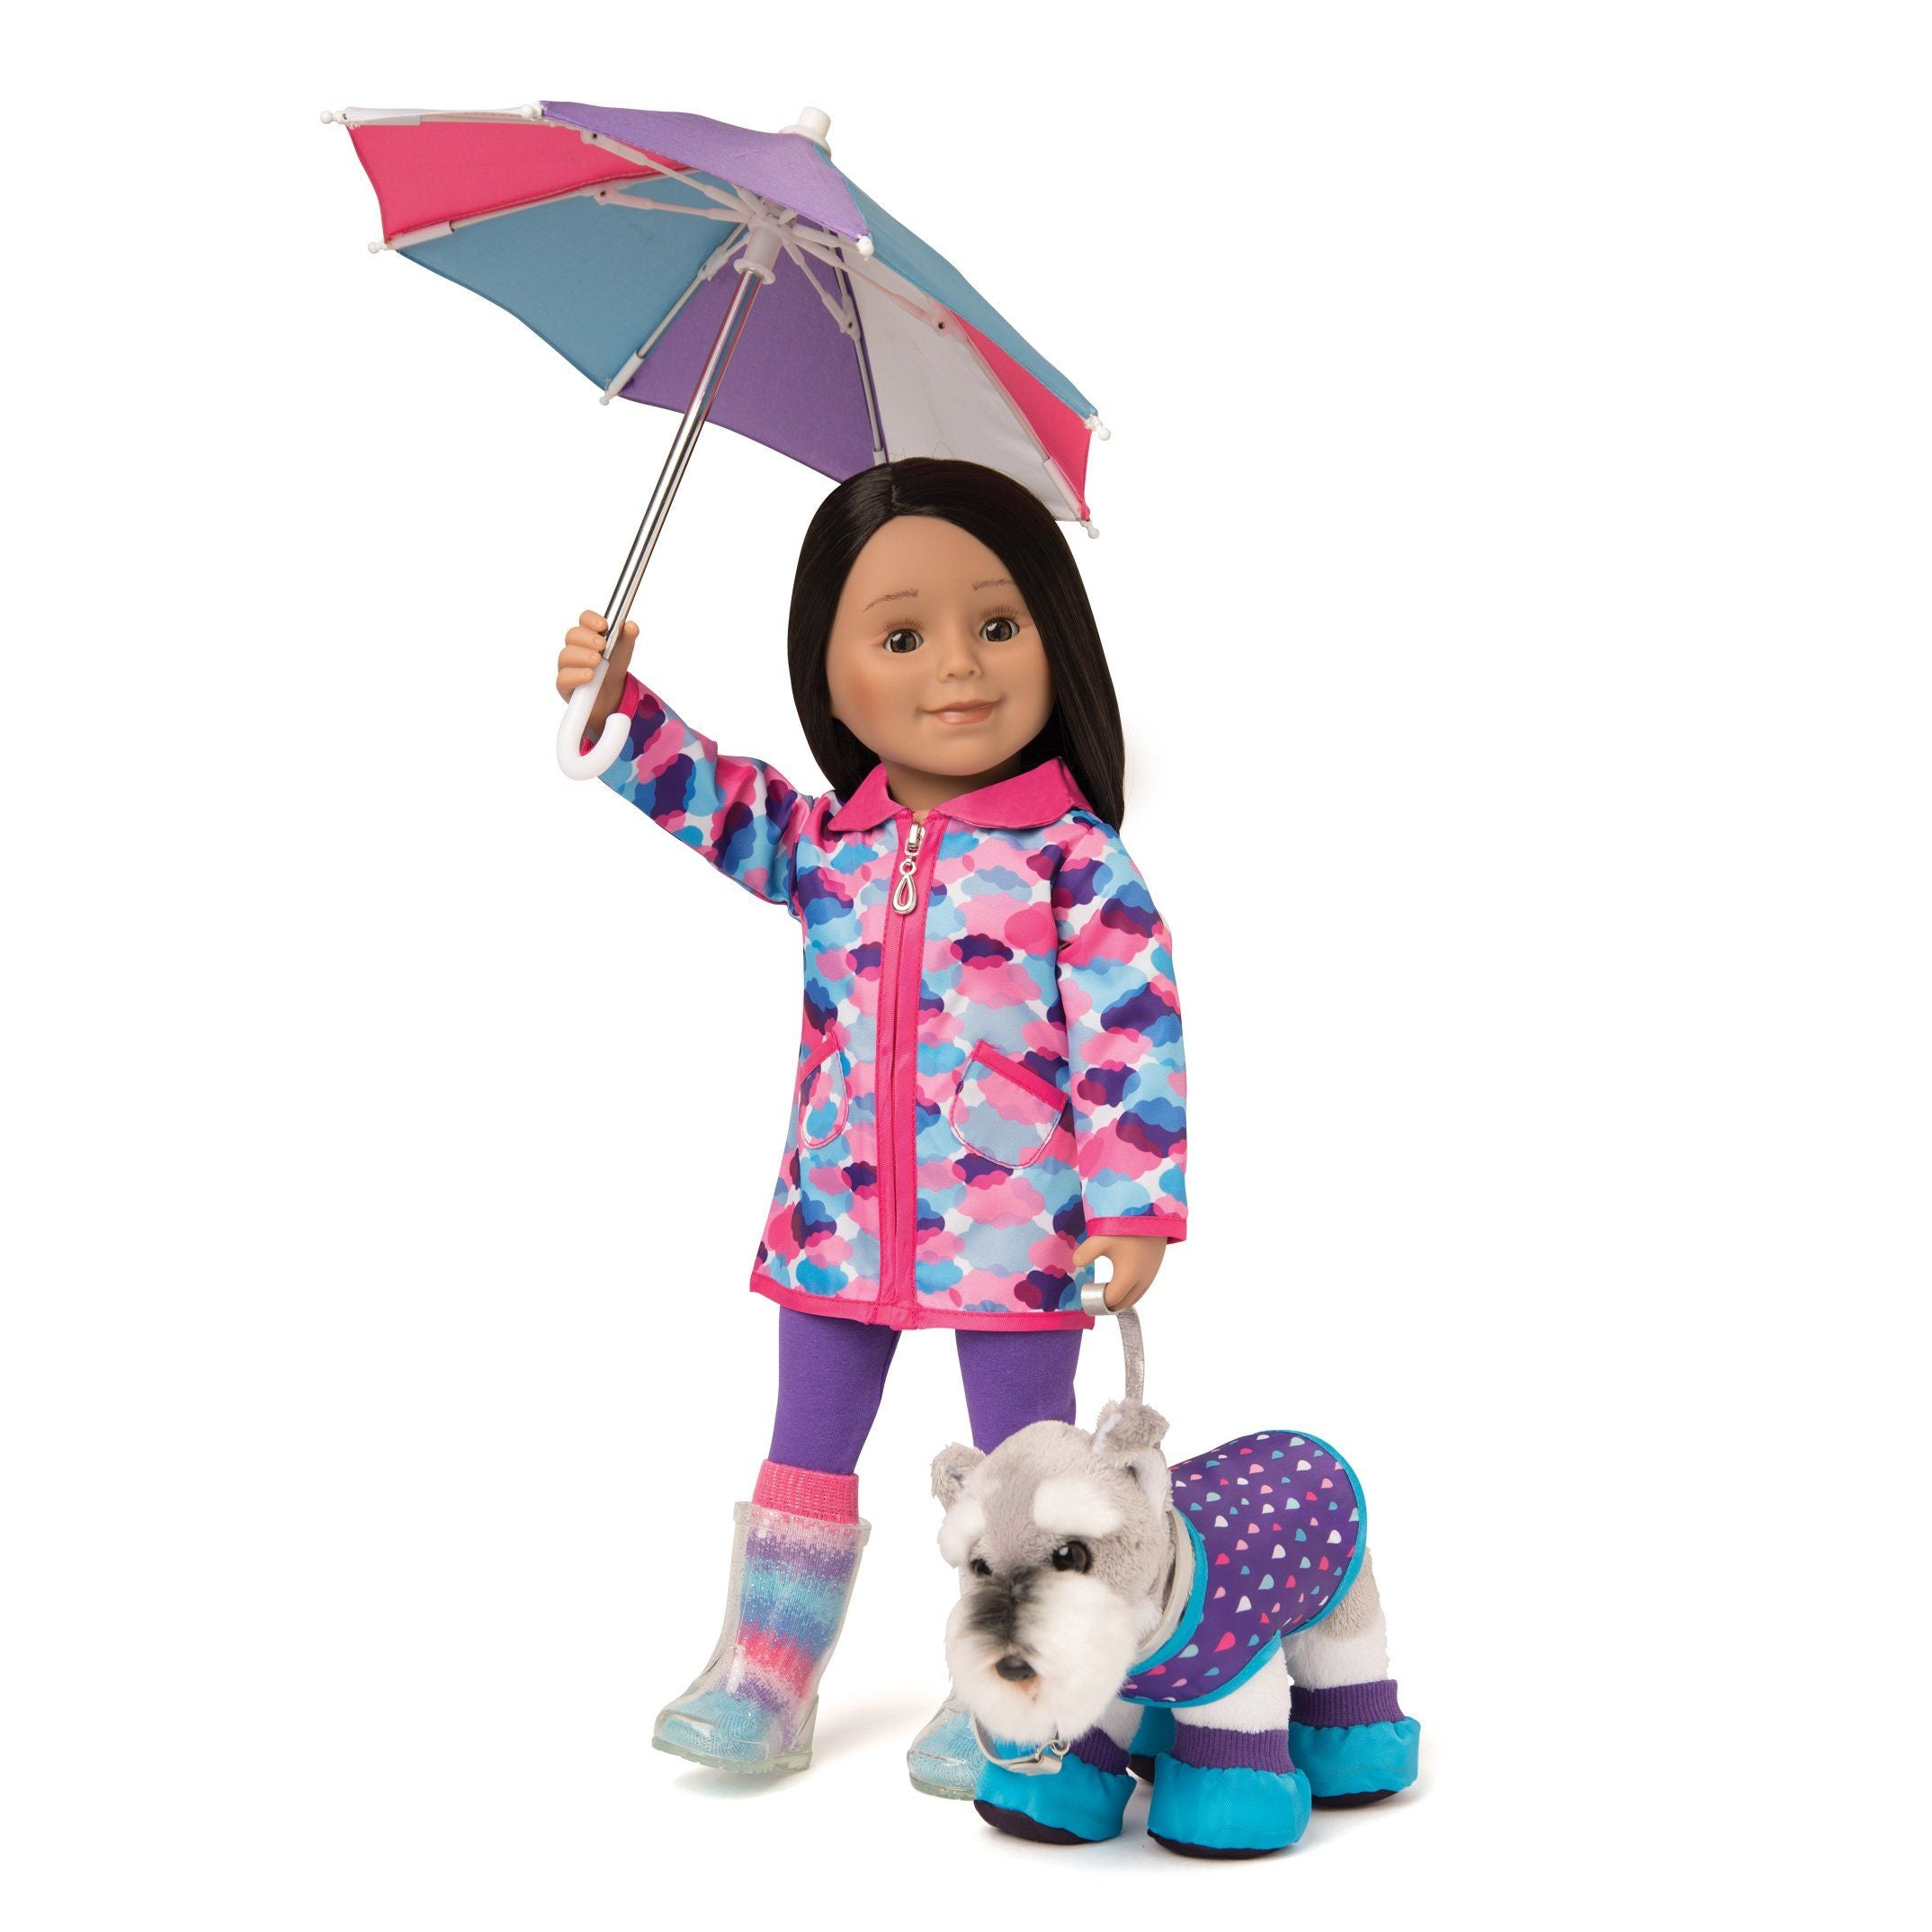 Rain jacket with cloud print and silver lining,  purple leggings, multi-coloured striped socks, purple, pink and blue umbrella fits all 18 inch dolls. Shown on Maplelea Friends doll with Jasper the schnauzer wearing a walk in the rain pet set.